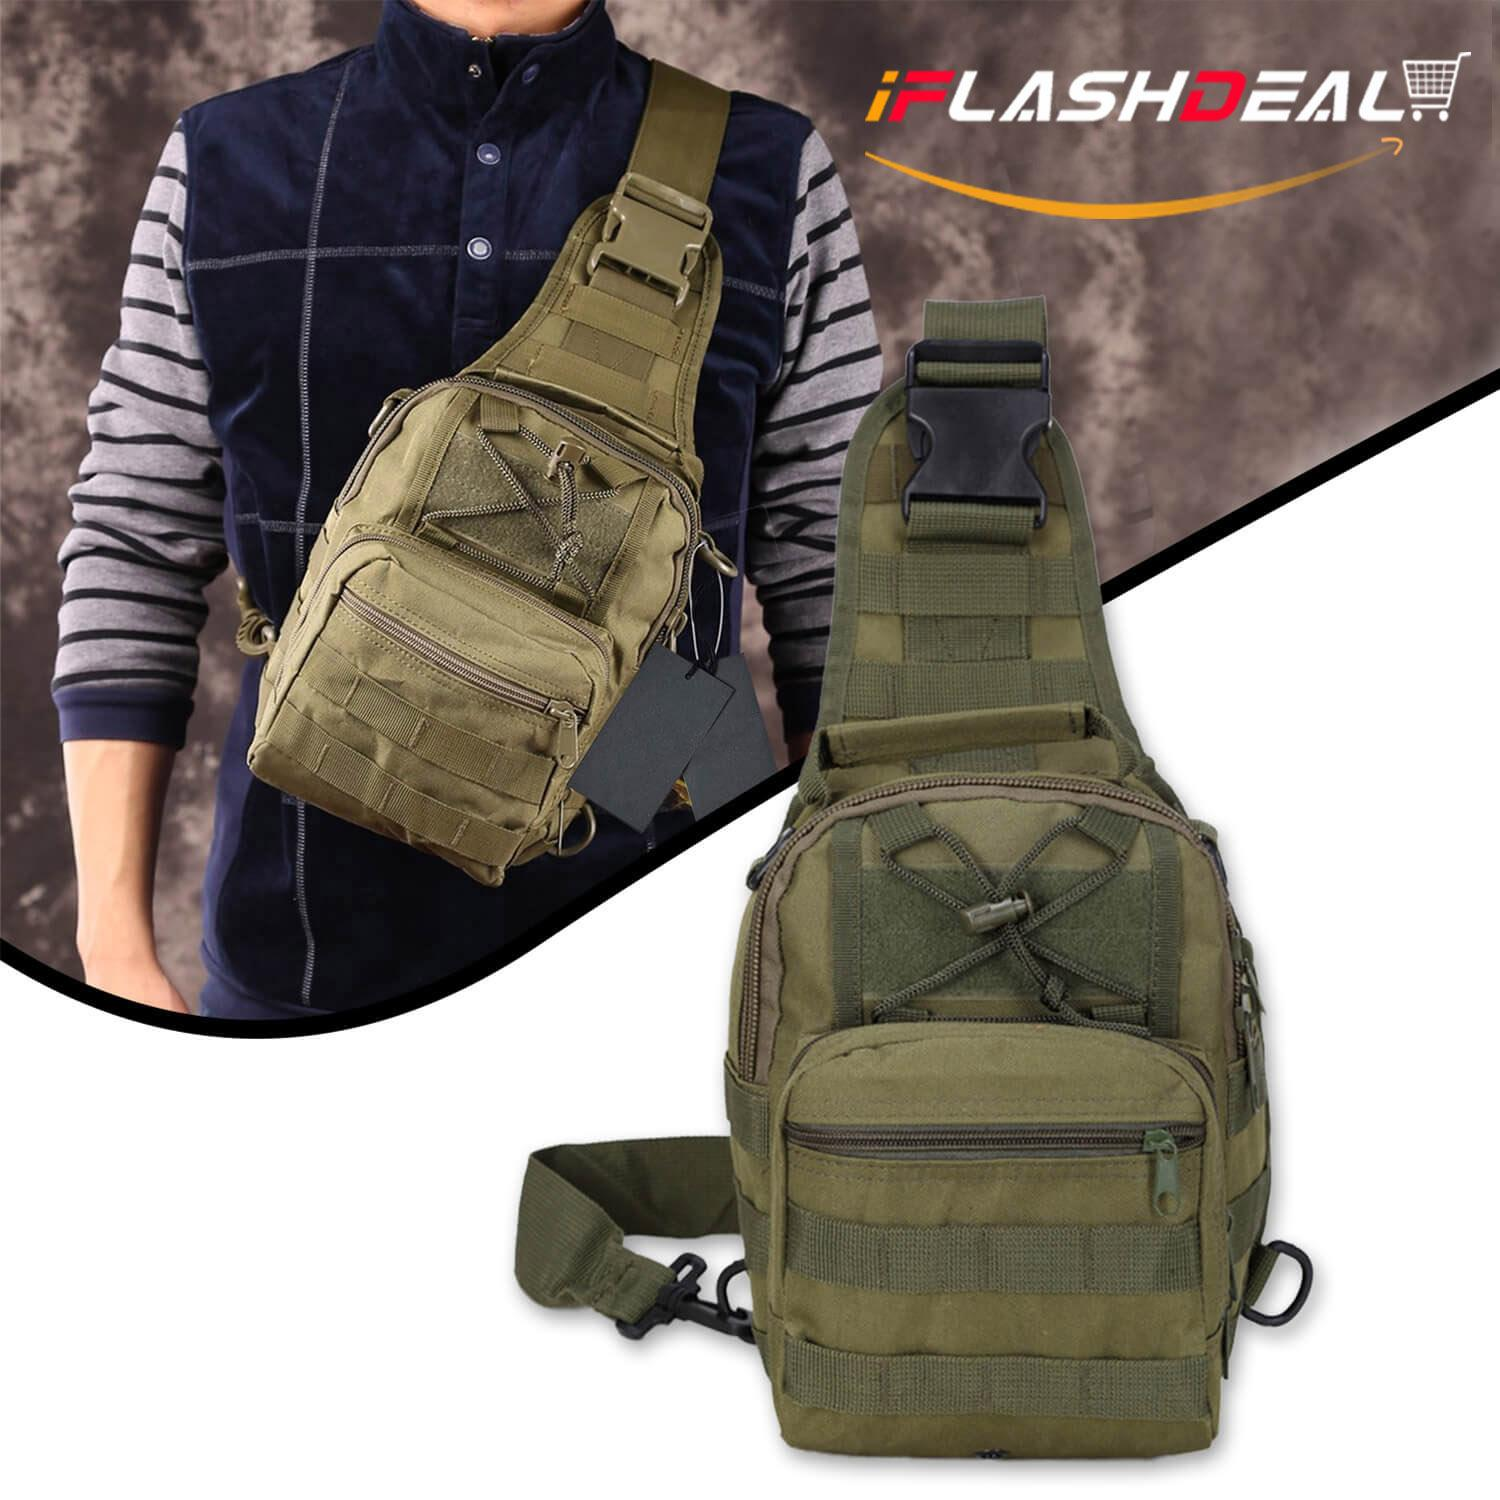 4fe3b33e58 iFlashDeal Tactical Sling Bag Men Crossbody Bas Outdoor Chest Pack Shoulder  Backpack Military Sport Cross Body